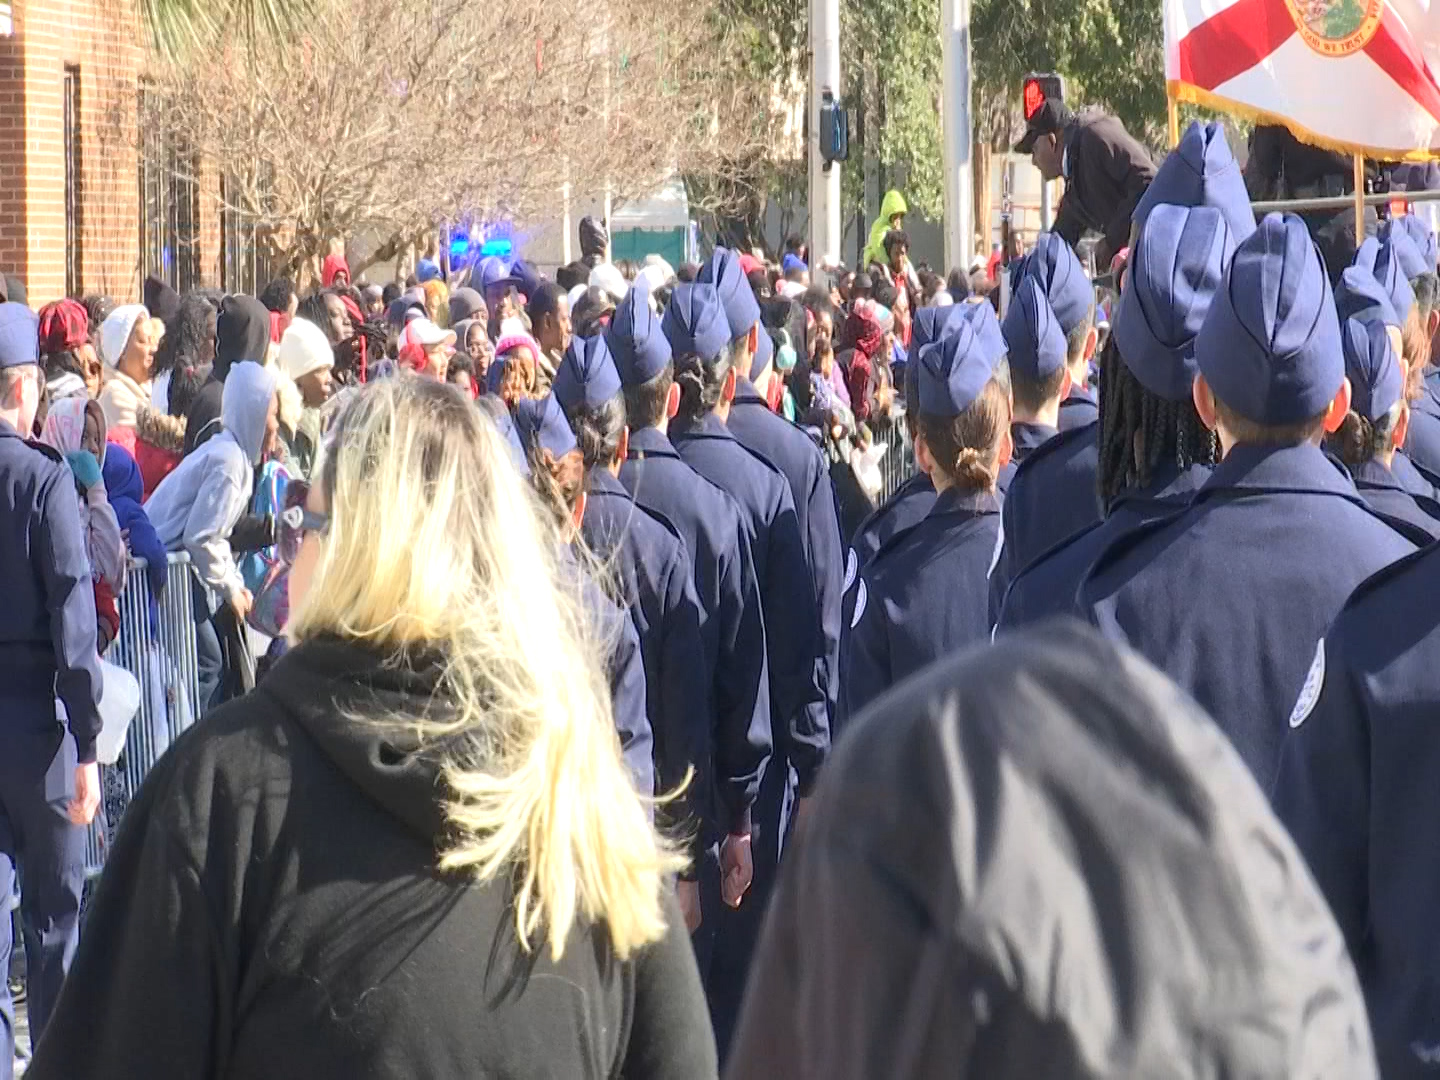 Mchd Ambulance Christmas Parade 2020 Crowds gather in downtown Pensacola for MLK Day Parade – WKRG News 5